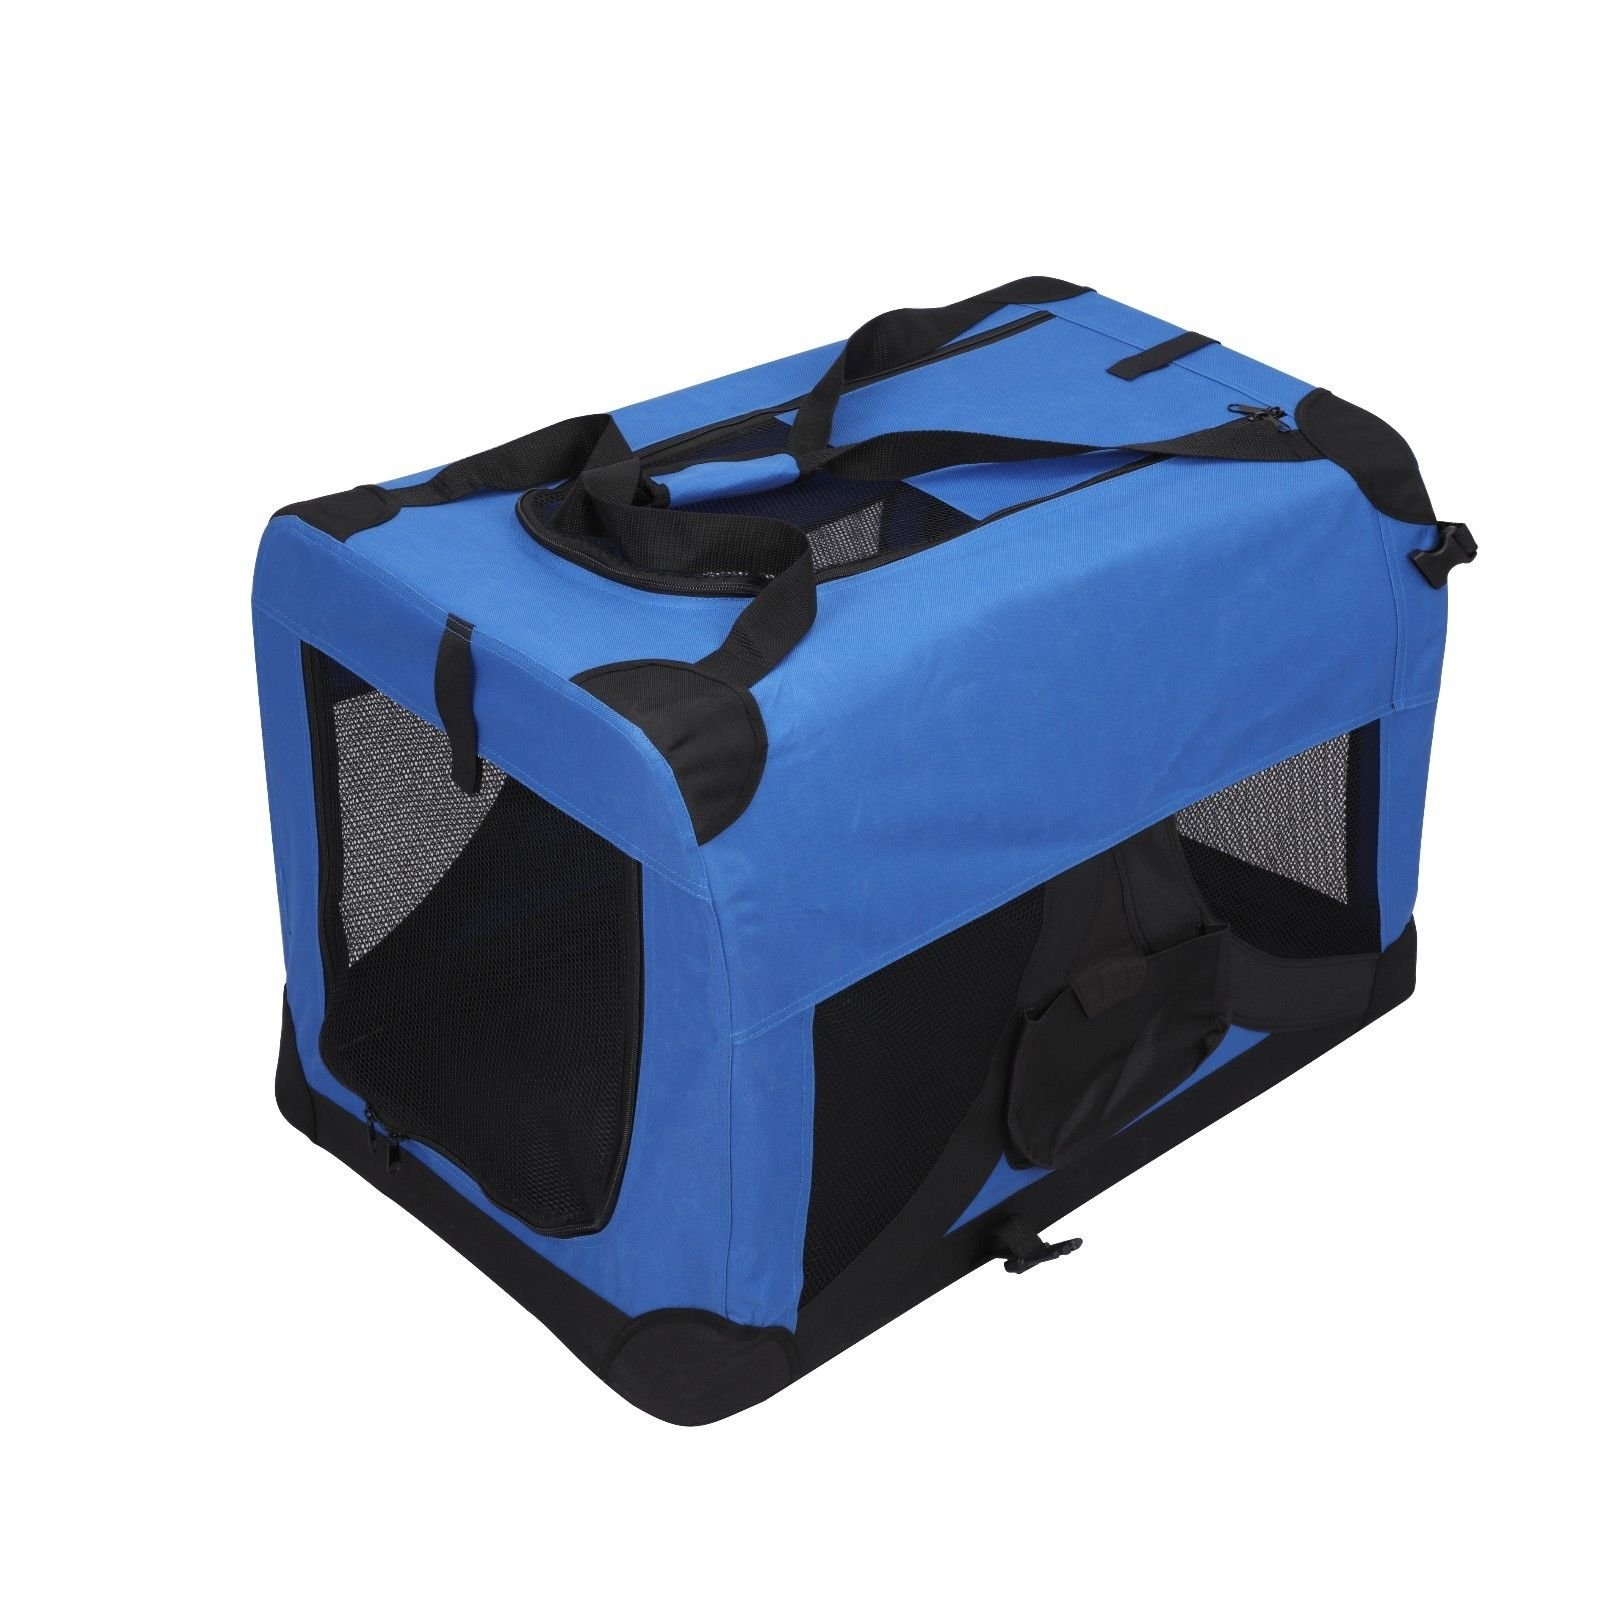 Magshion Folding Soft Crates Kennels Travel Carrier with Metal Frame, 20-Inch, for Pet Up to 15lb (Blue) by Magshion